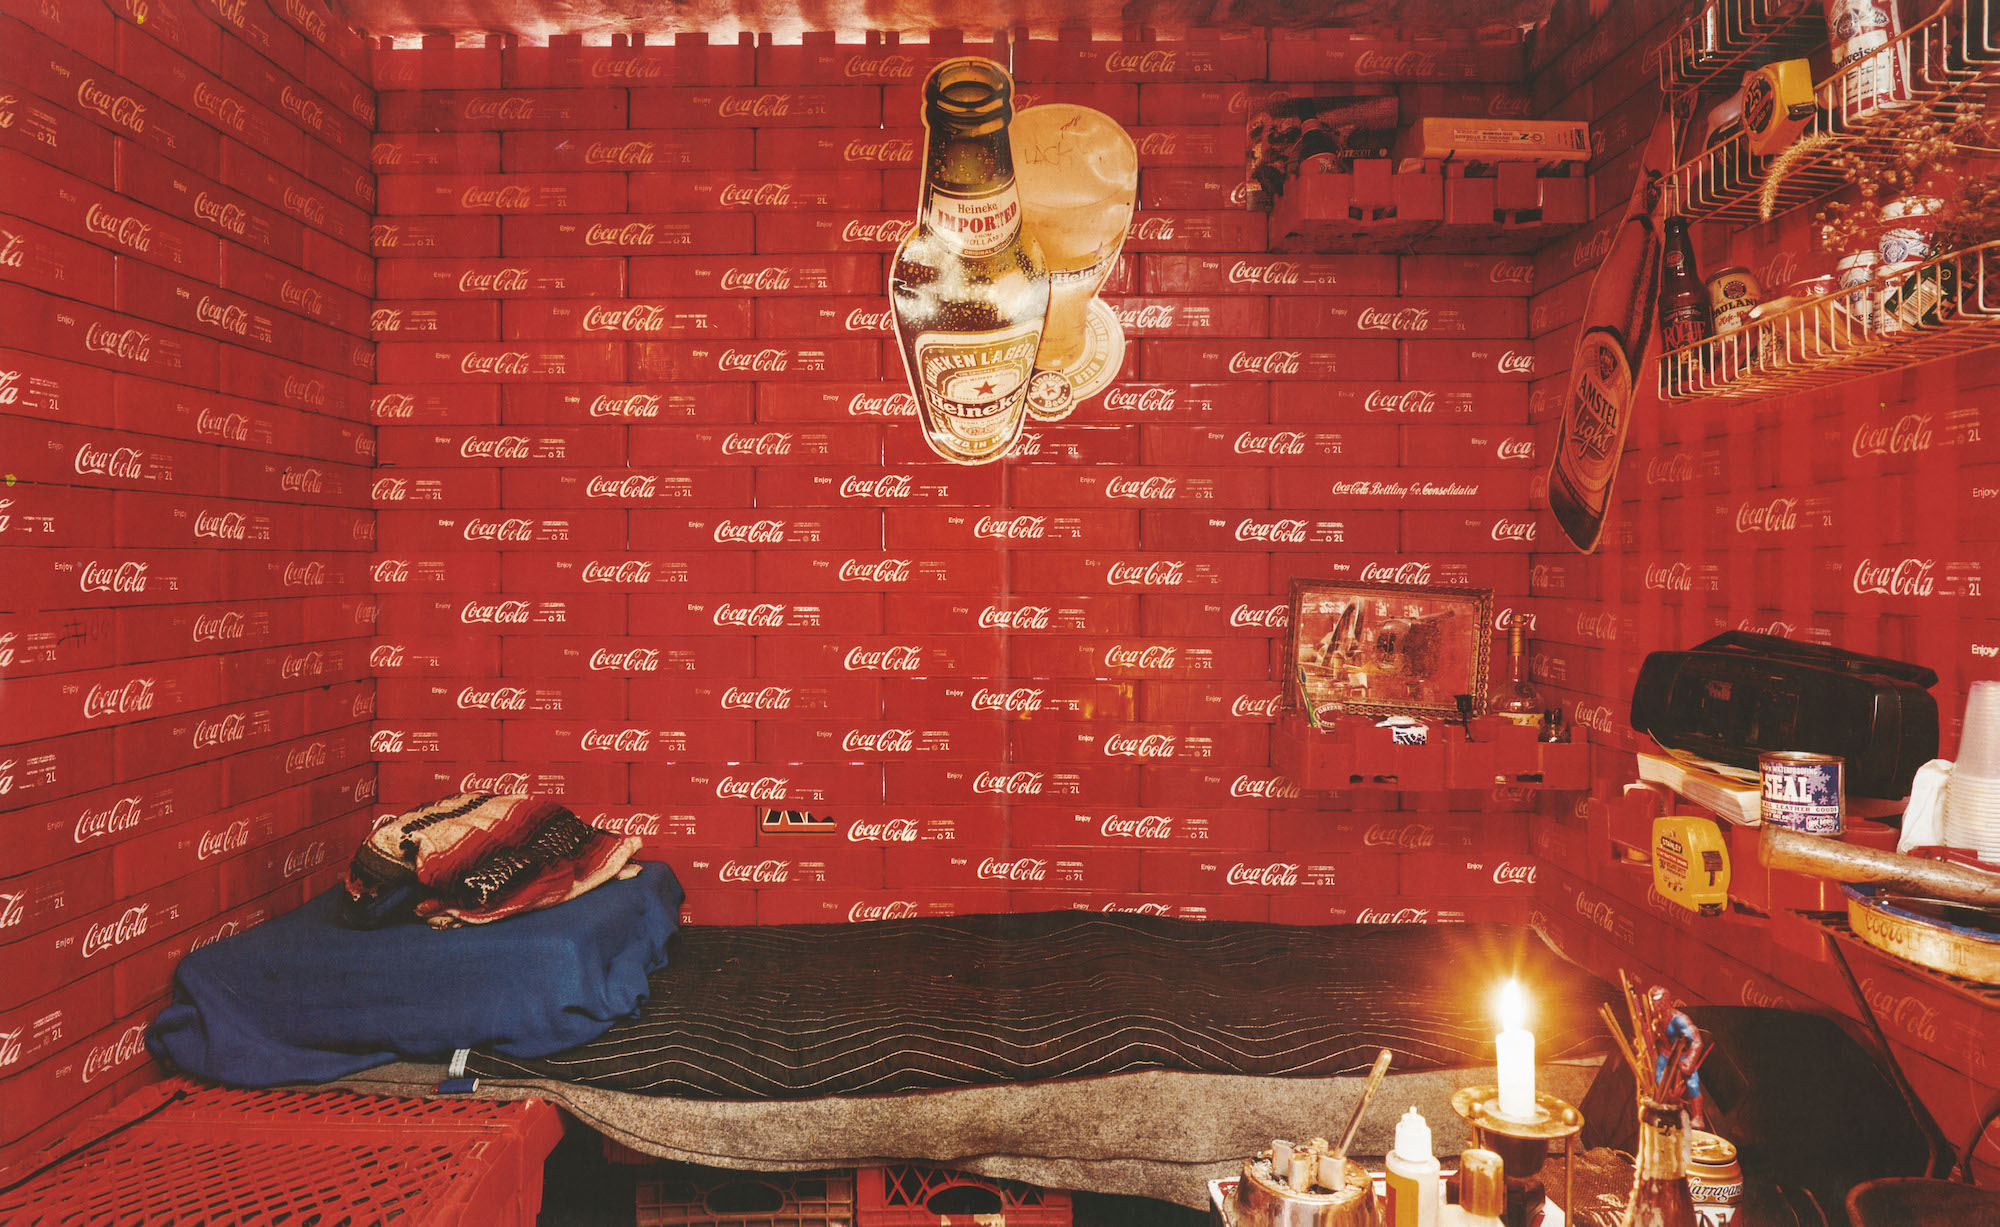 Nest 19, Winter 2002-03. The Workhouse. (Peter's Coca-Cola house, assembled from plastic Coke crates, Harlem, New York, NY). Photograph: Ejlat Feuer.